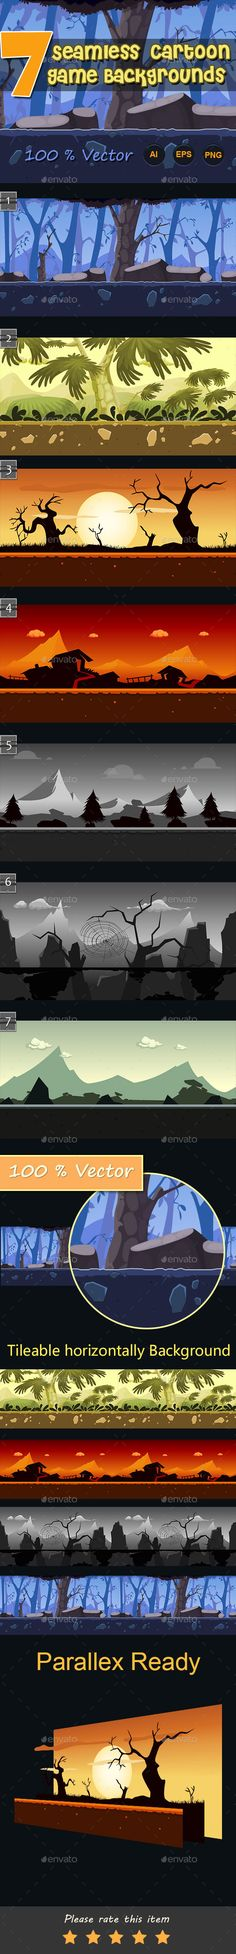 7 Seamless Cartoon Game Backgrounds Download here: https://graphicriver.net/item/7-seamless-cartoon-game-backgrounds/11530623?ref=KlitVogli